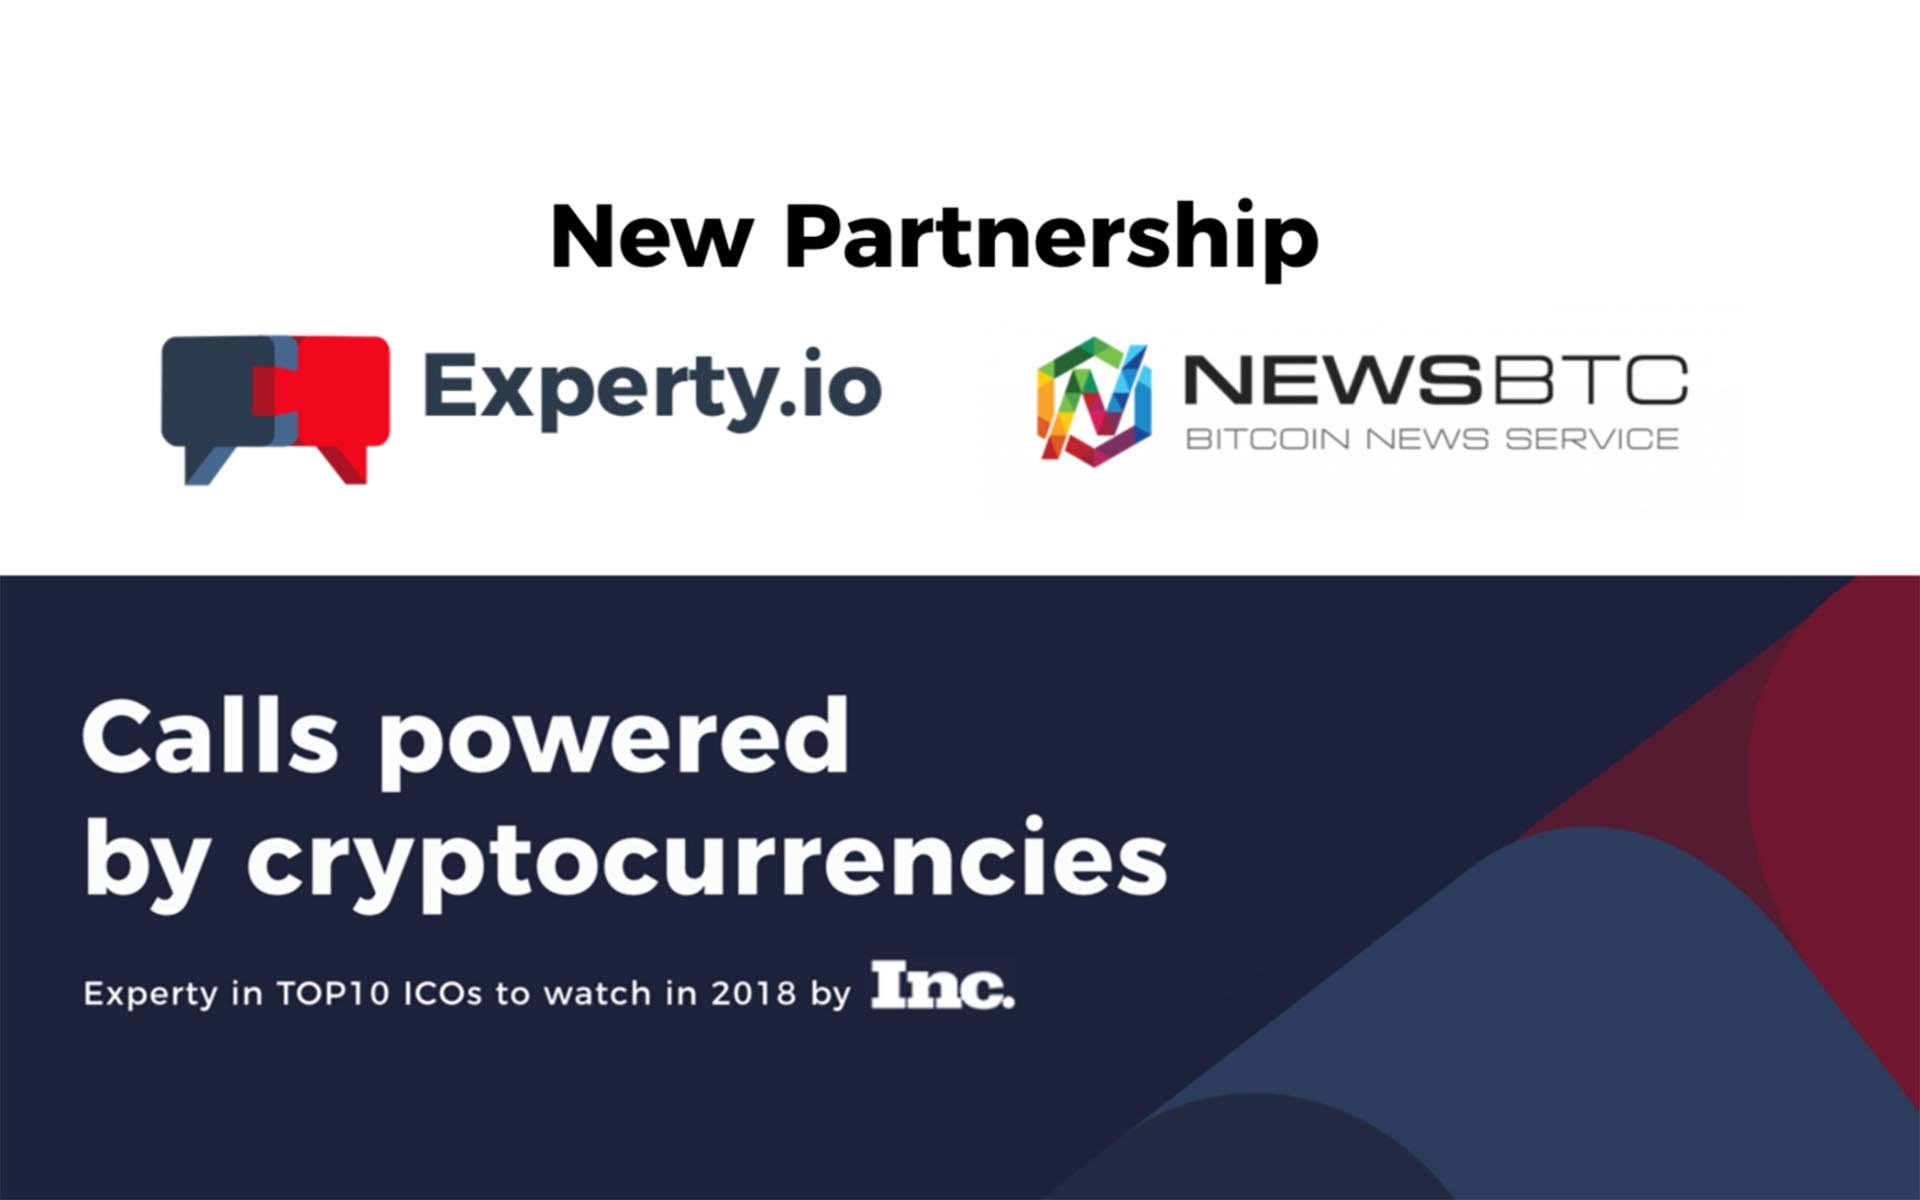 Experty Partners with NewsBTC